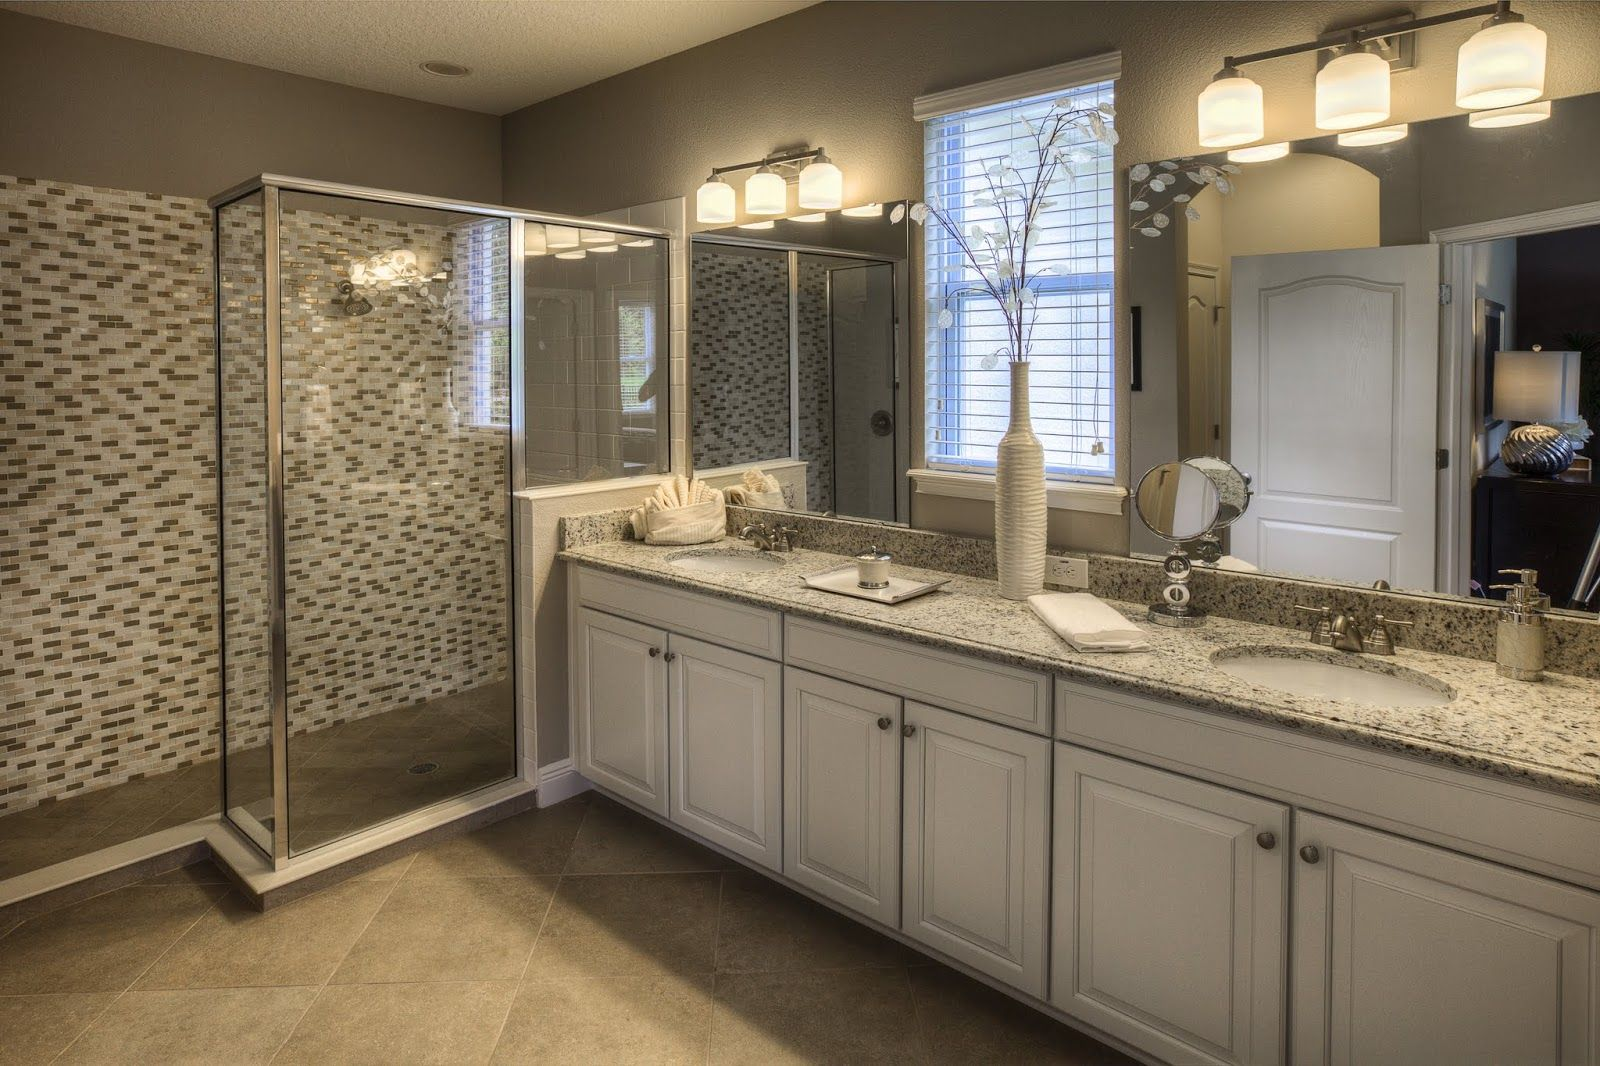 New Homes for Sale in Orlando, FL by Ashton Woods | Modern ...